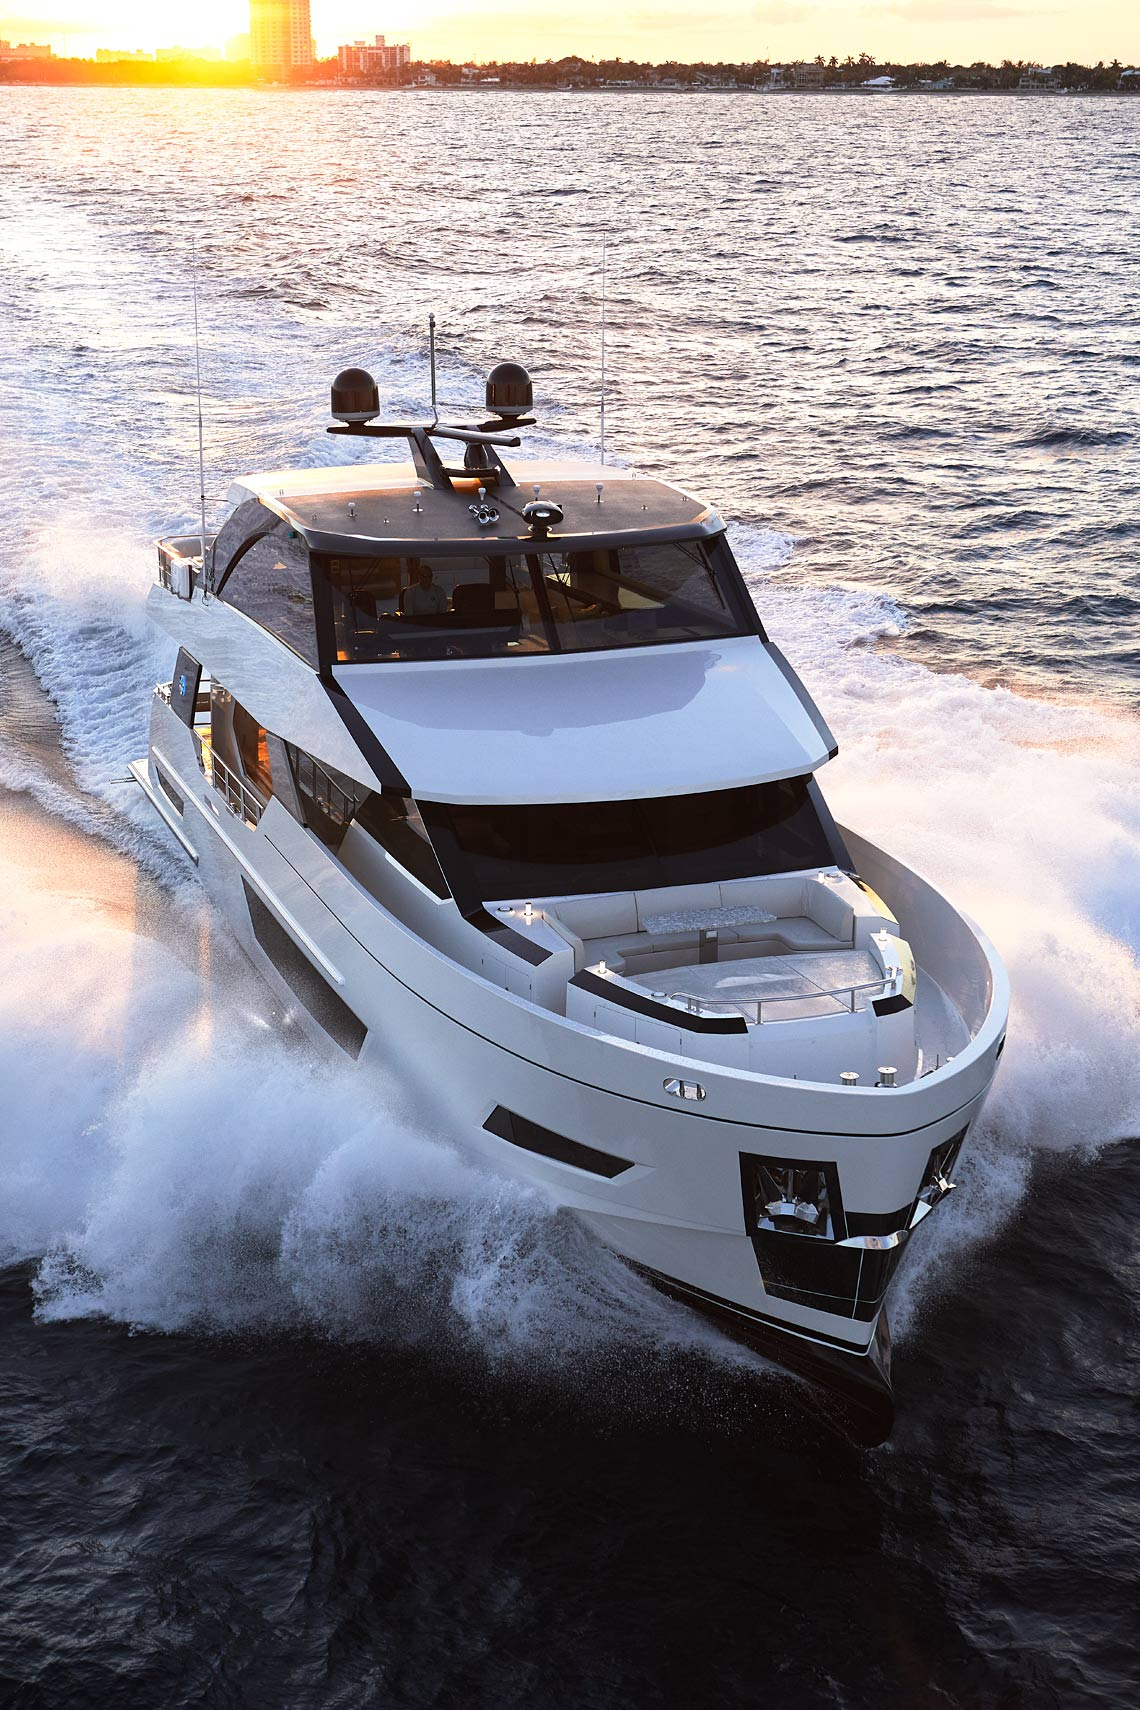 Image 1 for Adaptable Ocean Alexander 26R Meets Every Boating Need